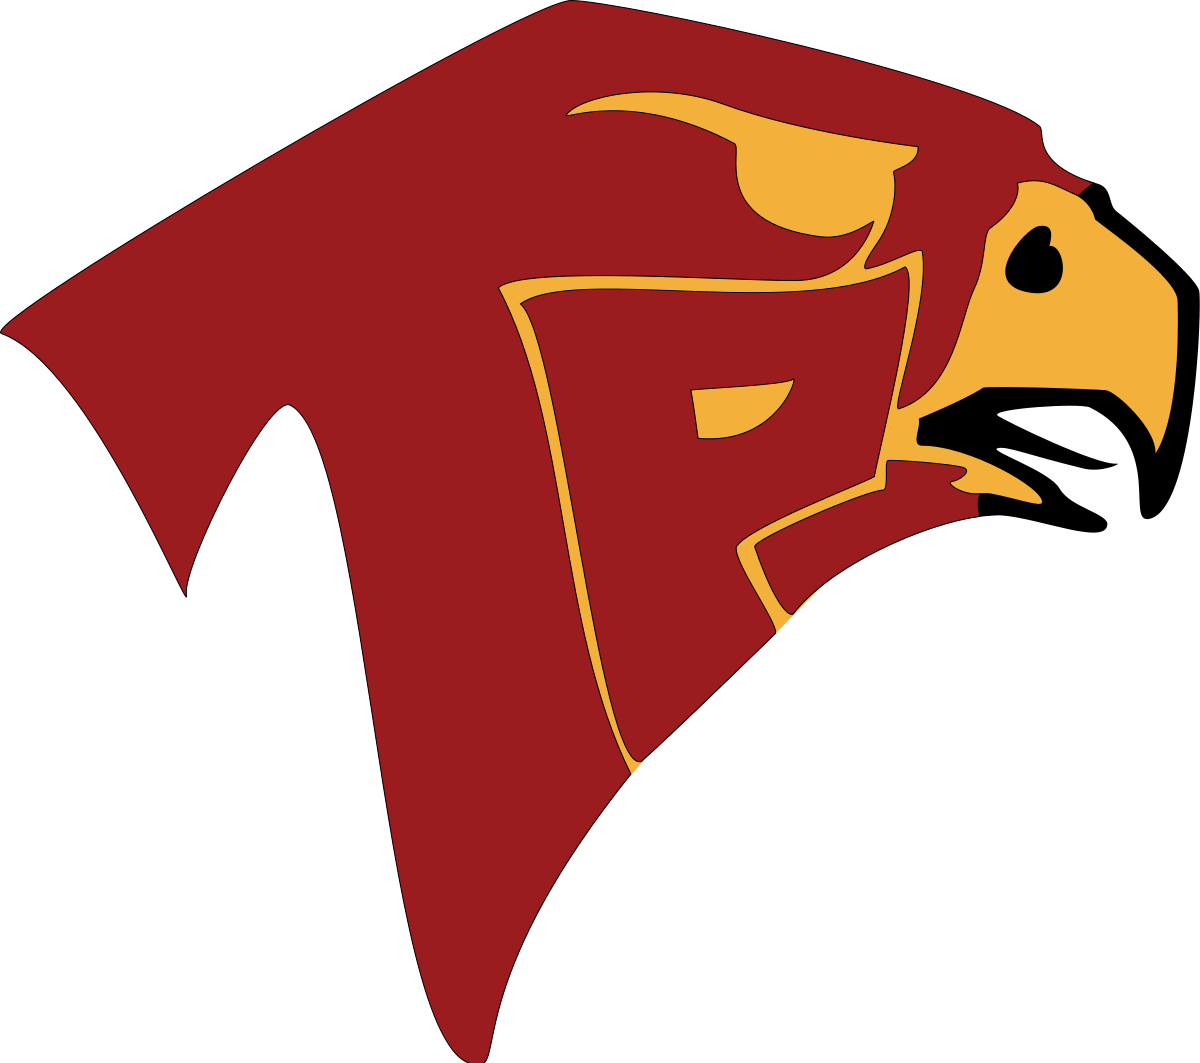 Eagle school mascot clipart. Torrey pines high wikipedia